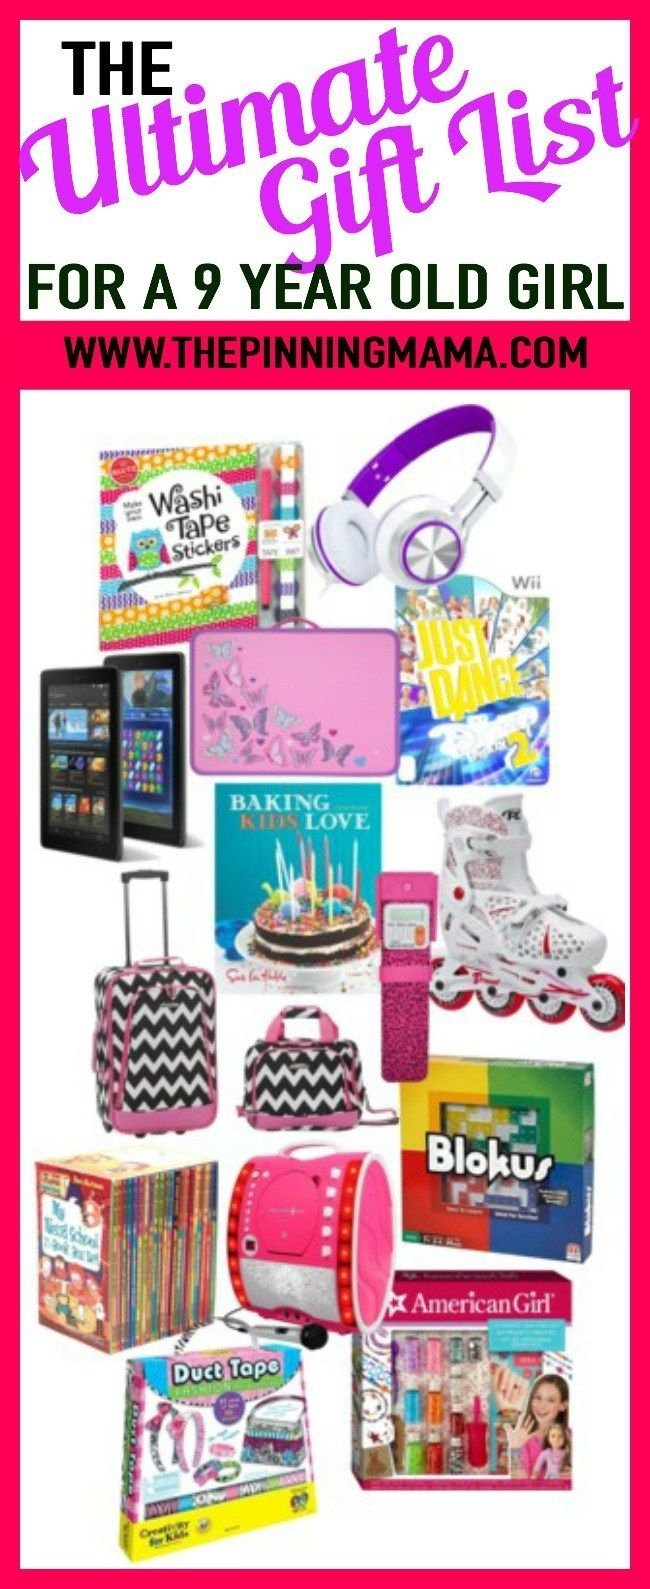 10 Perfect 6 Year Old Birthday Gift Ideas The Ultimate List For A 9